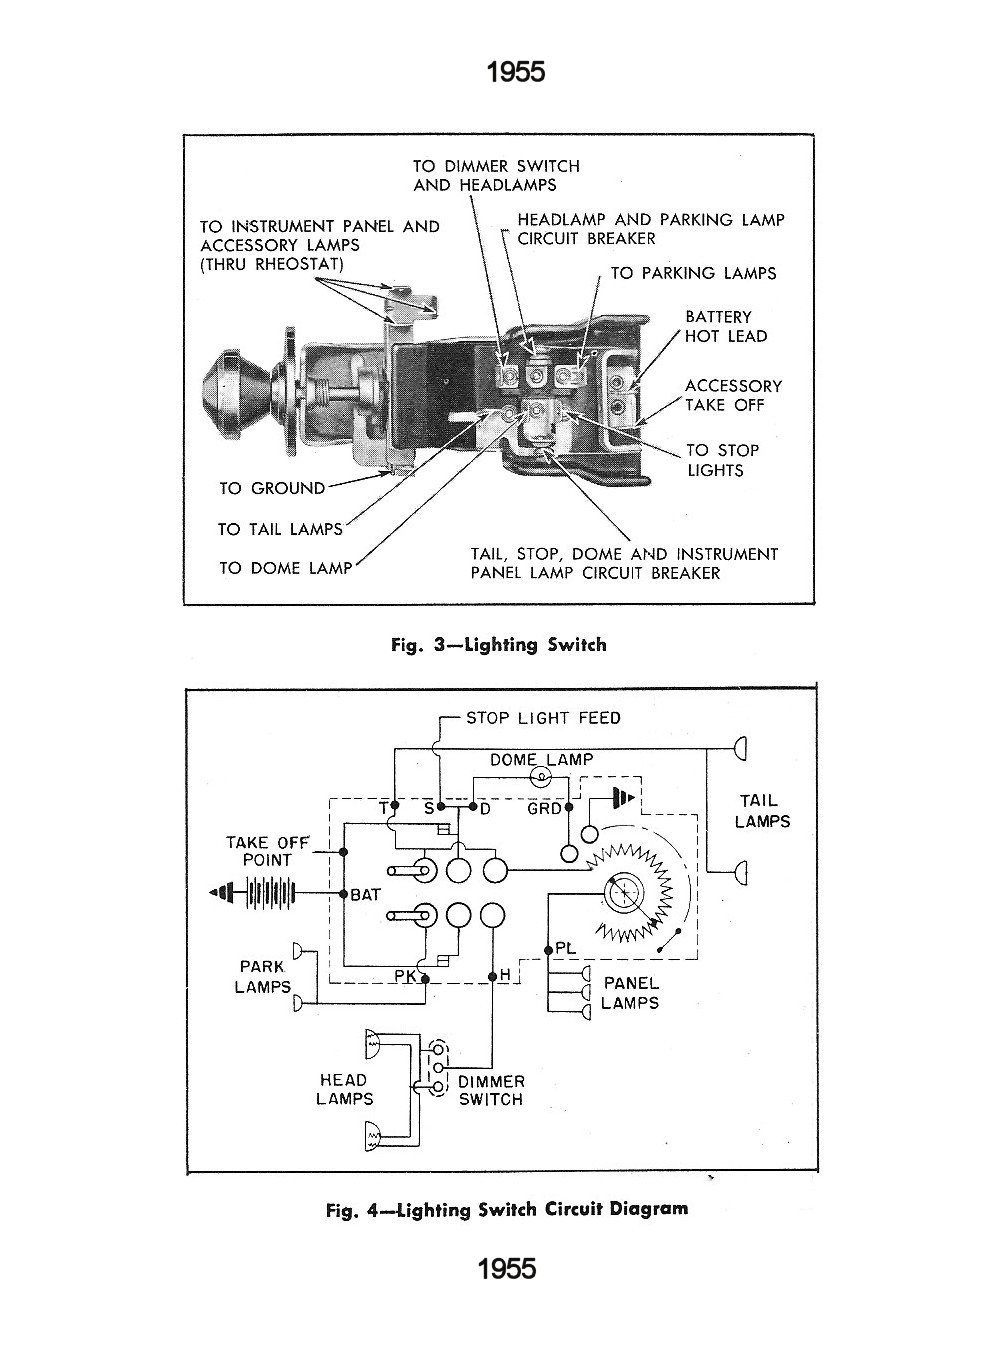 55 Willys Jeep Wiring Diagram Data Diagrams Harness Cj5 Moreover 1955 Chevy Bel Air Wiper Motor Rh Sellfie Co 1946